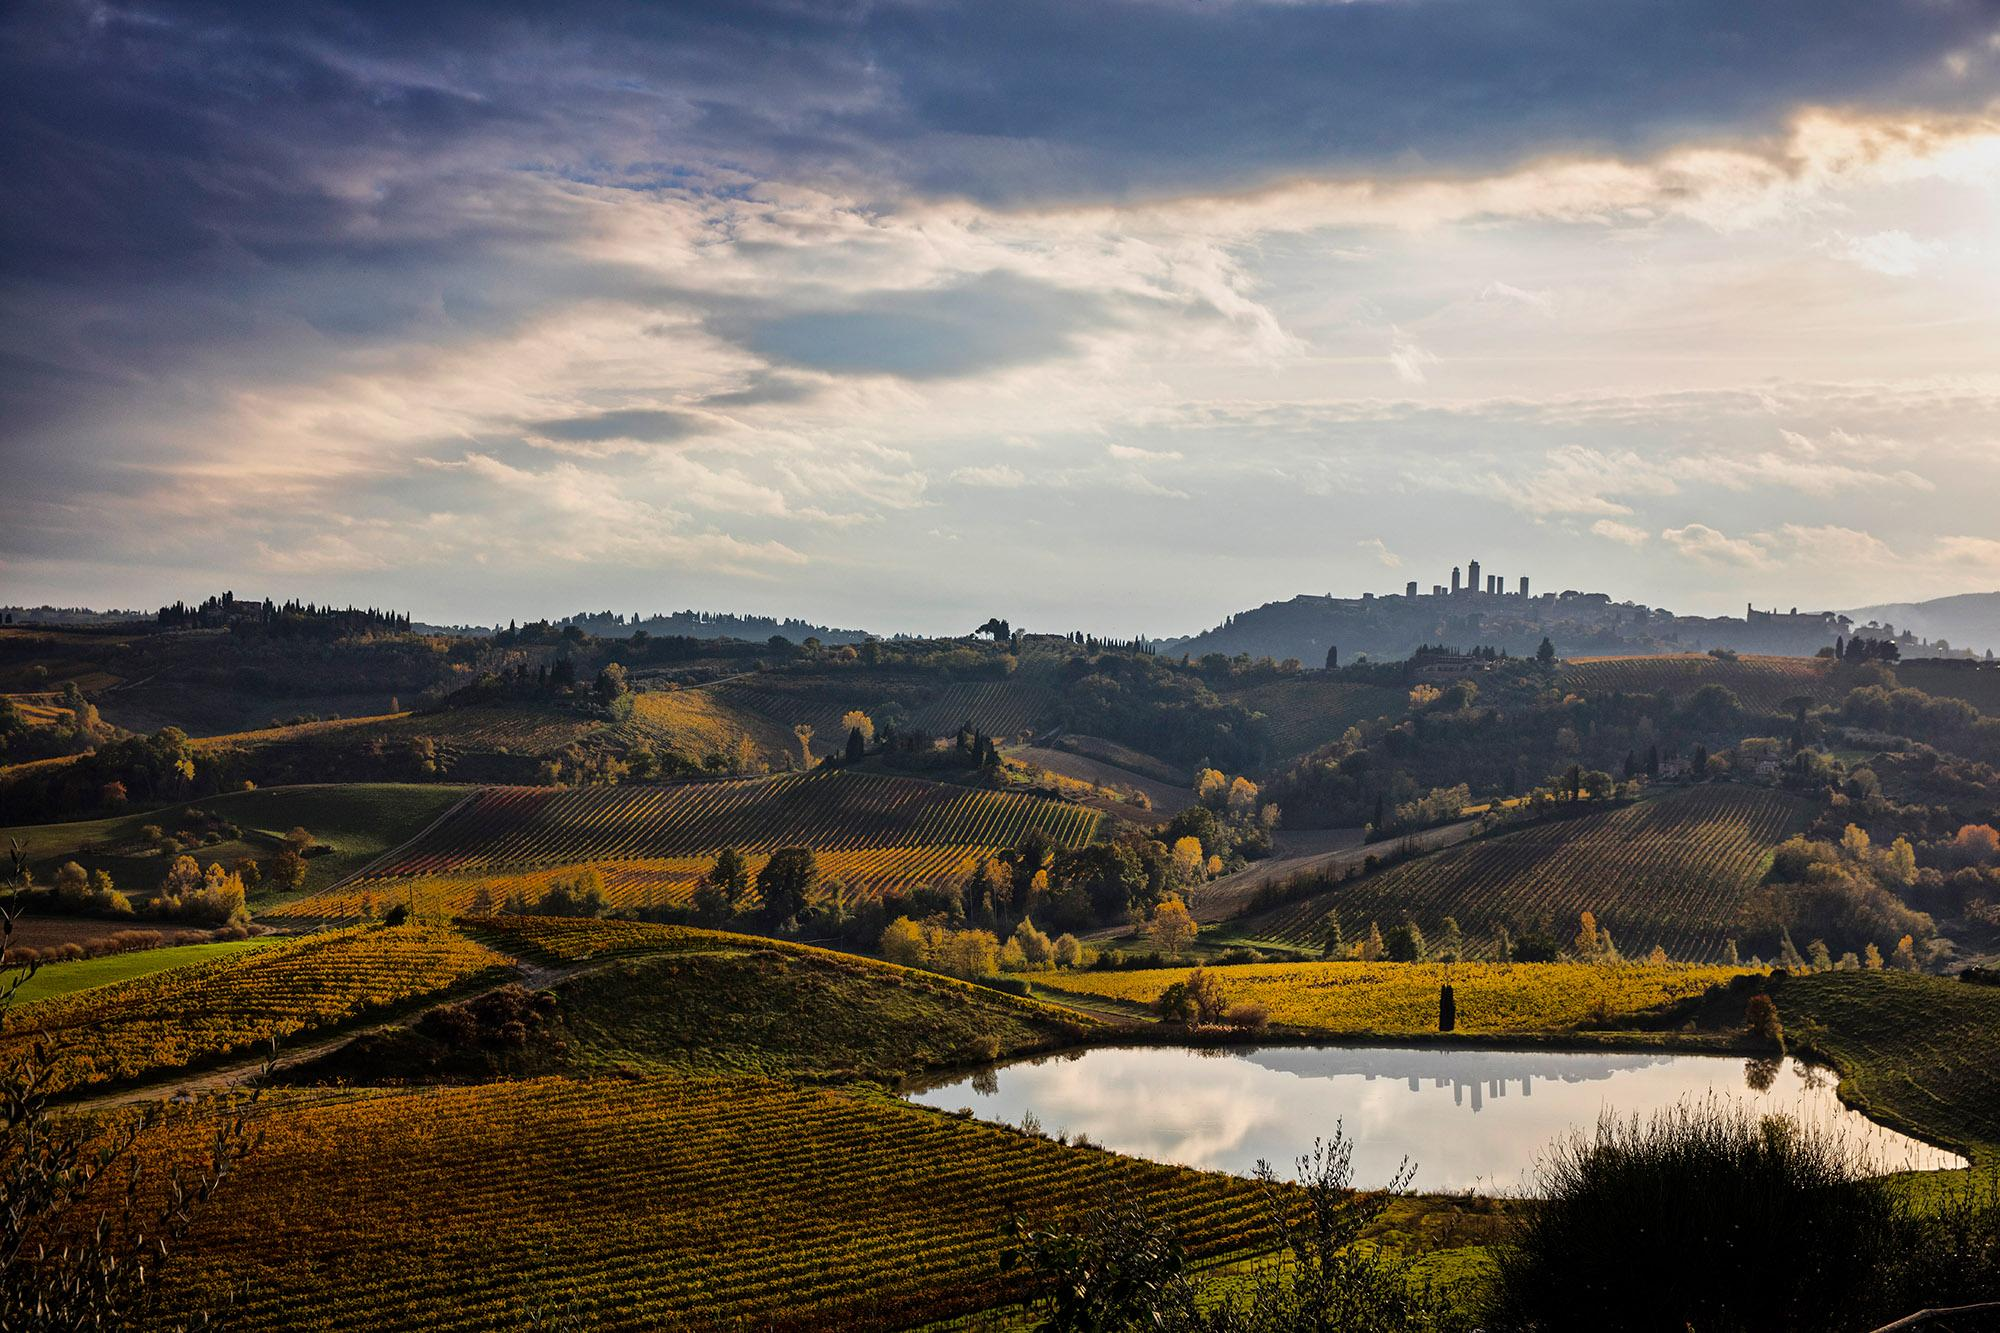 Vernaccia di San Gimignano wine has been grown in this region since the Middle Ages. - © Consorzio della Denominazione San Gimignano